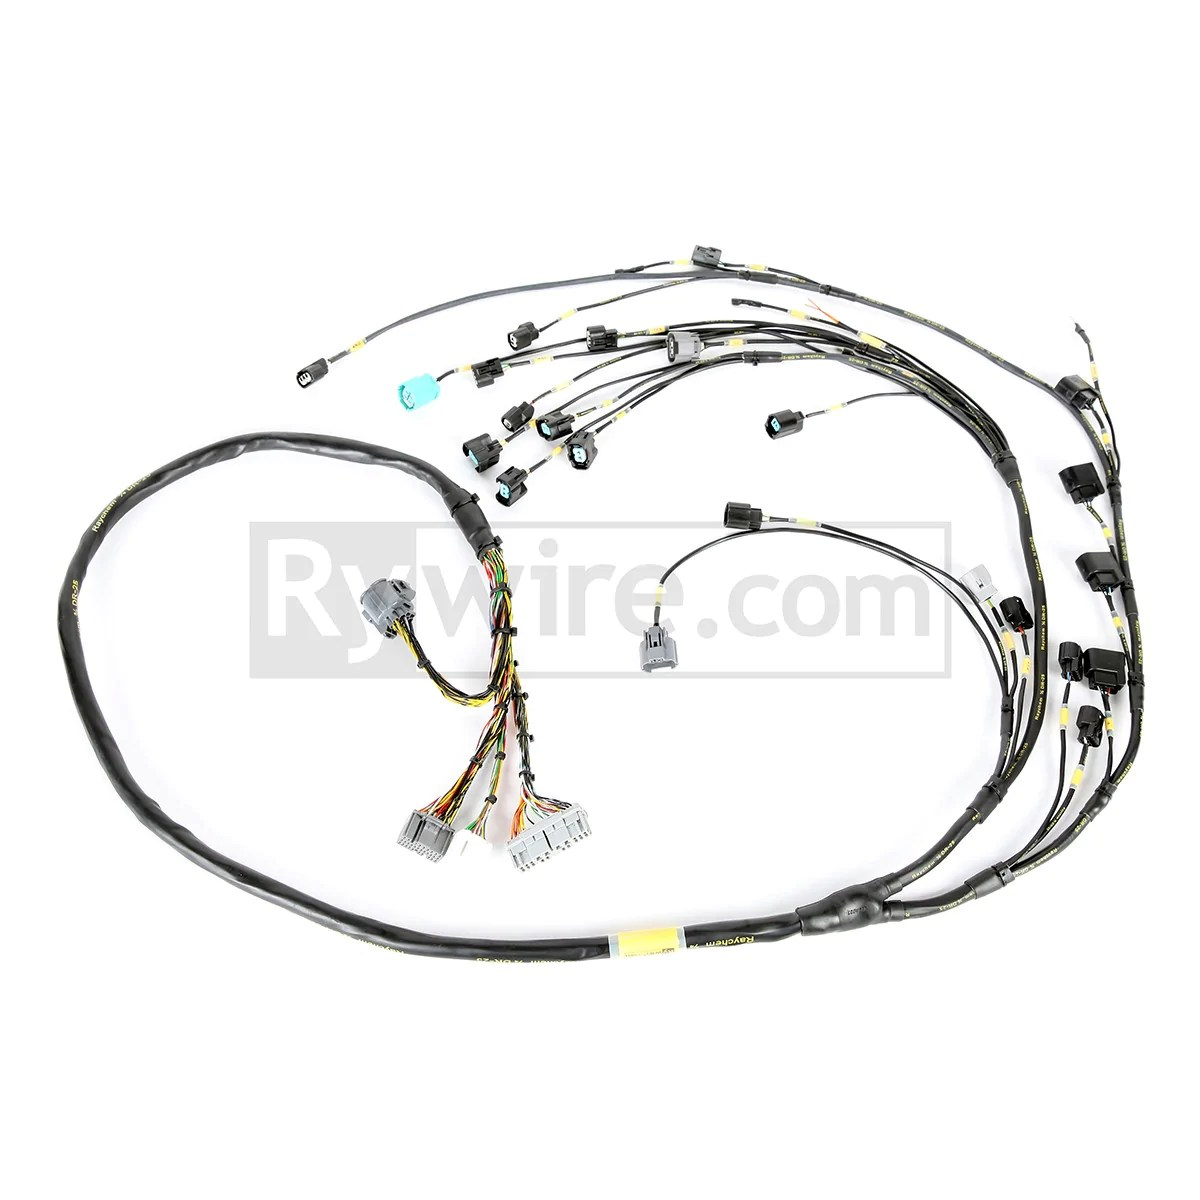 medium resolution of rywire mil spec tucked k series harness ver 2 with quick disconnect